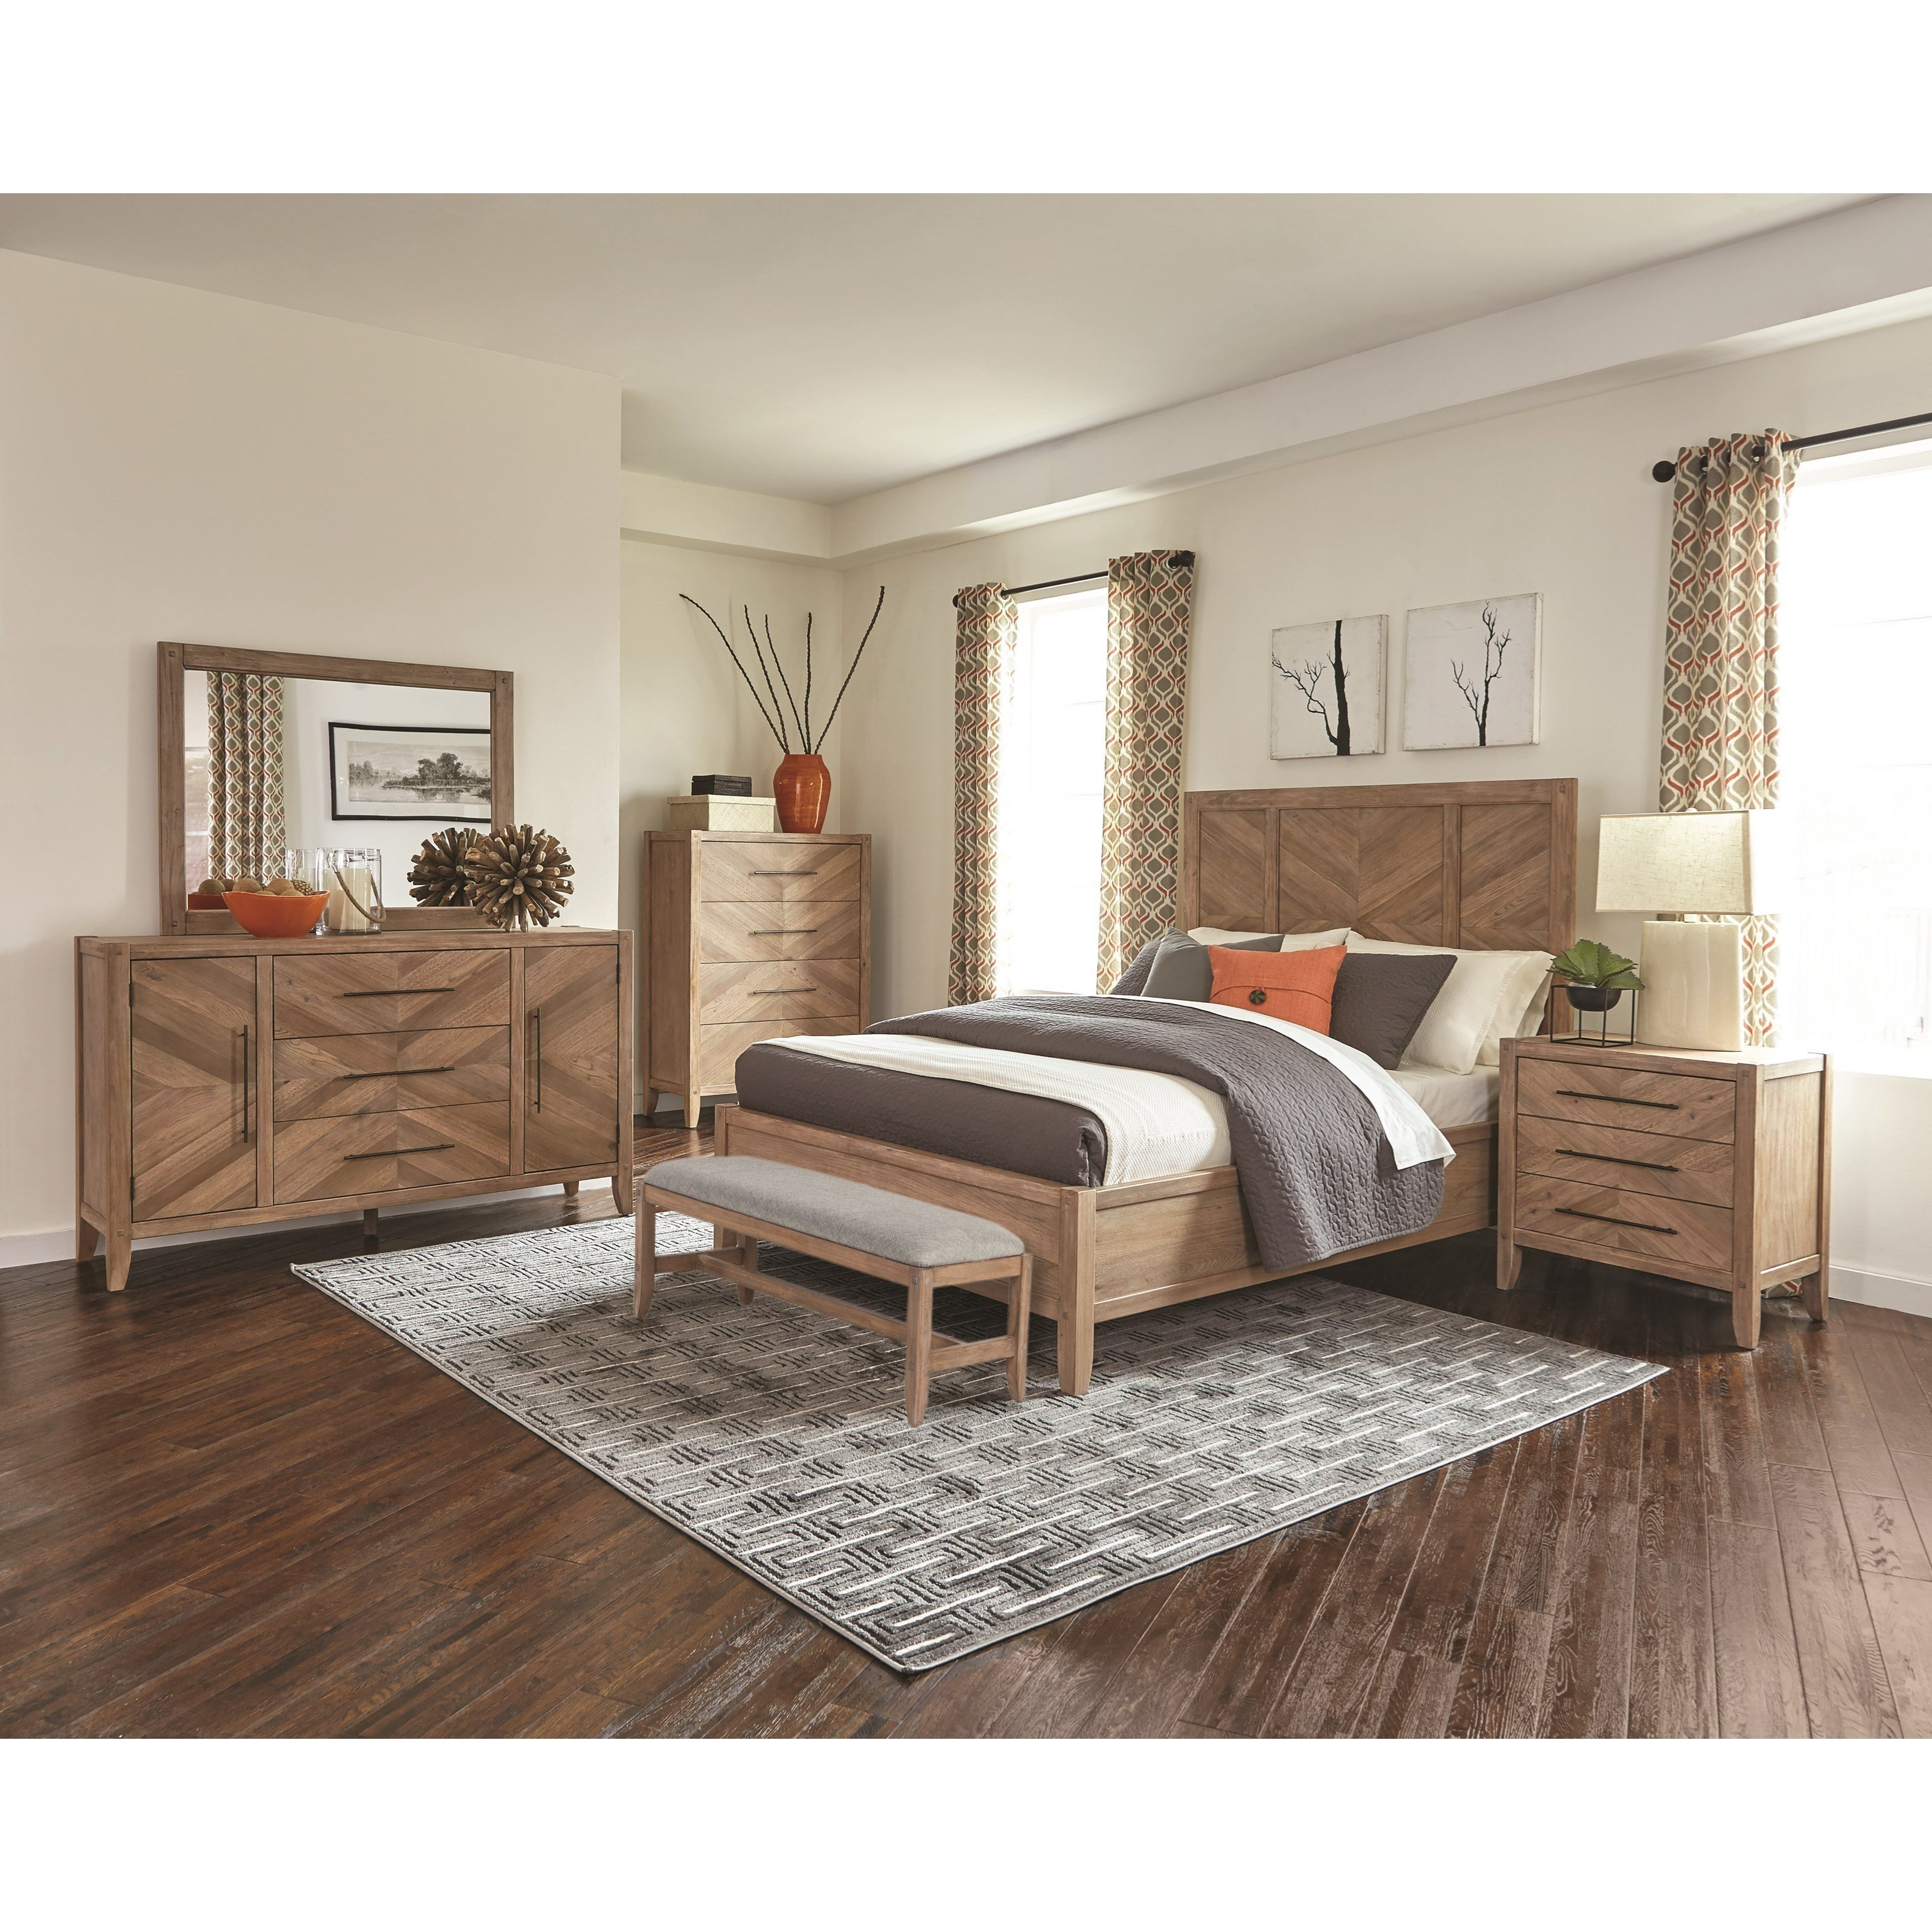 Best Auburn 4Pc Bedroom Set – Furniture Mattress Los Angeles With Pictures